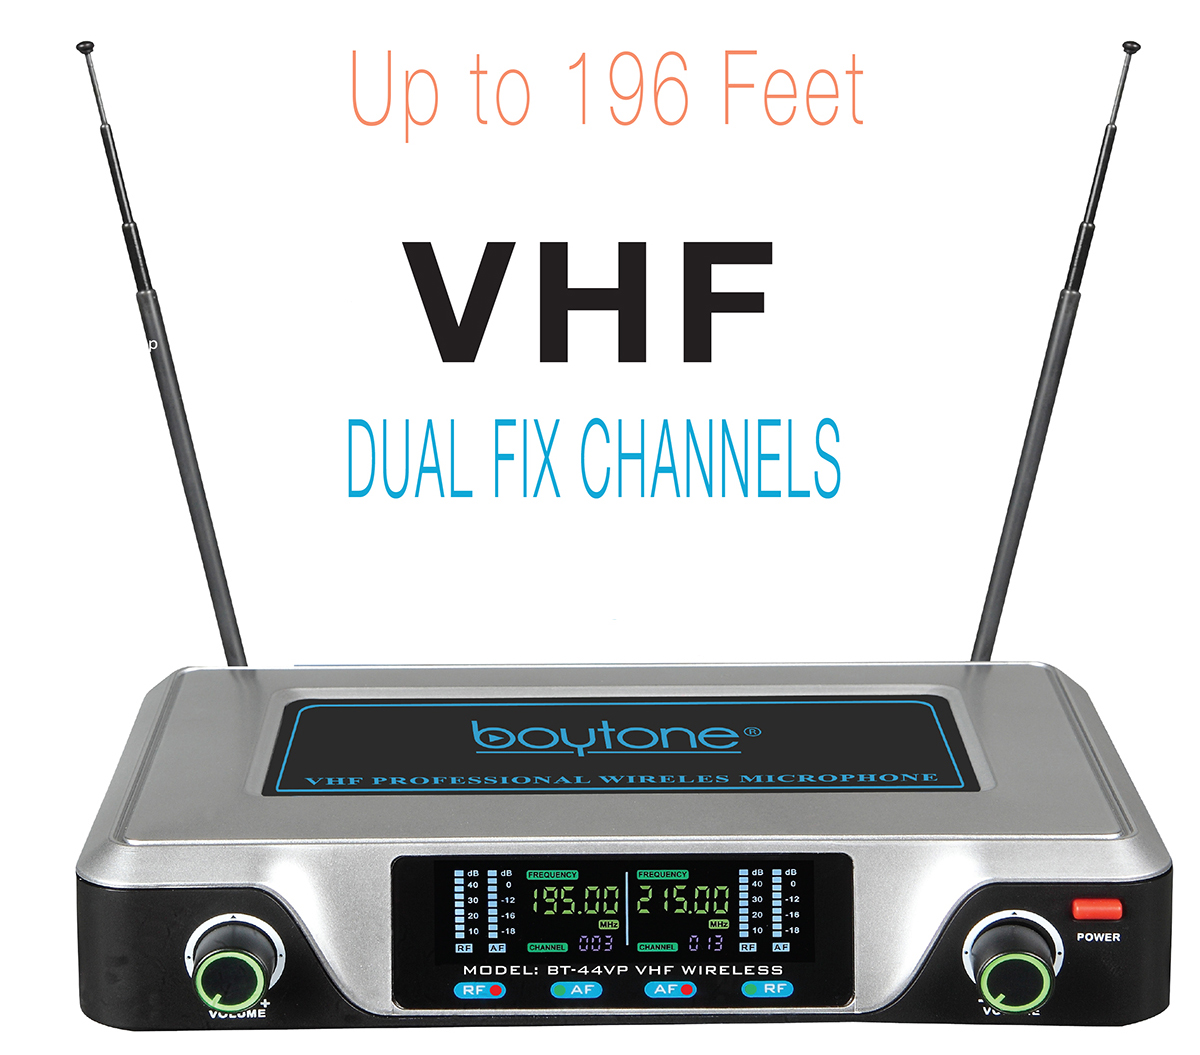 Boytone BT-44VP Dual Digital Channel Wireless Microphone plus Headset Mic Set System - VHF Fixed Frequency